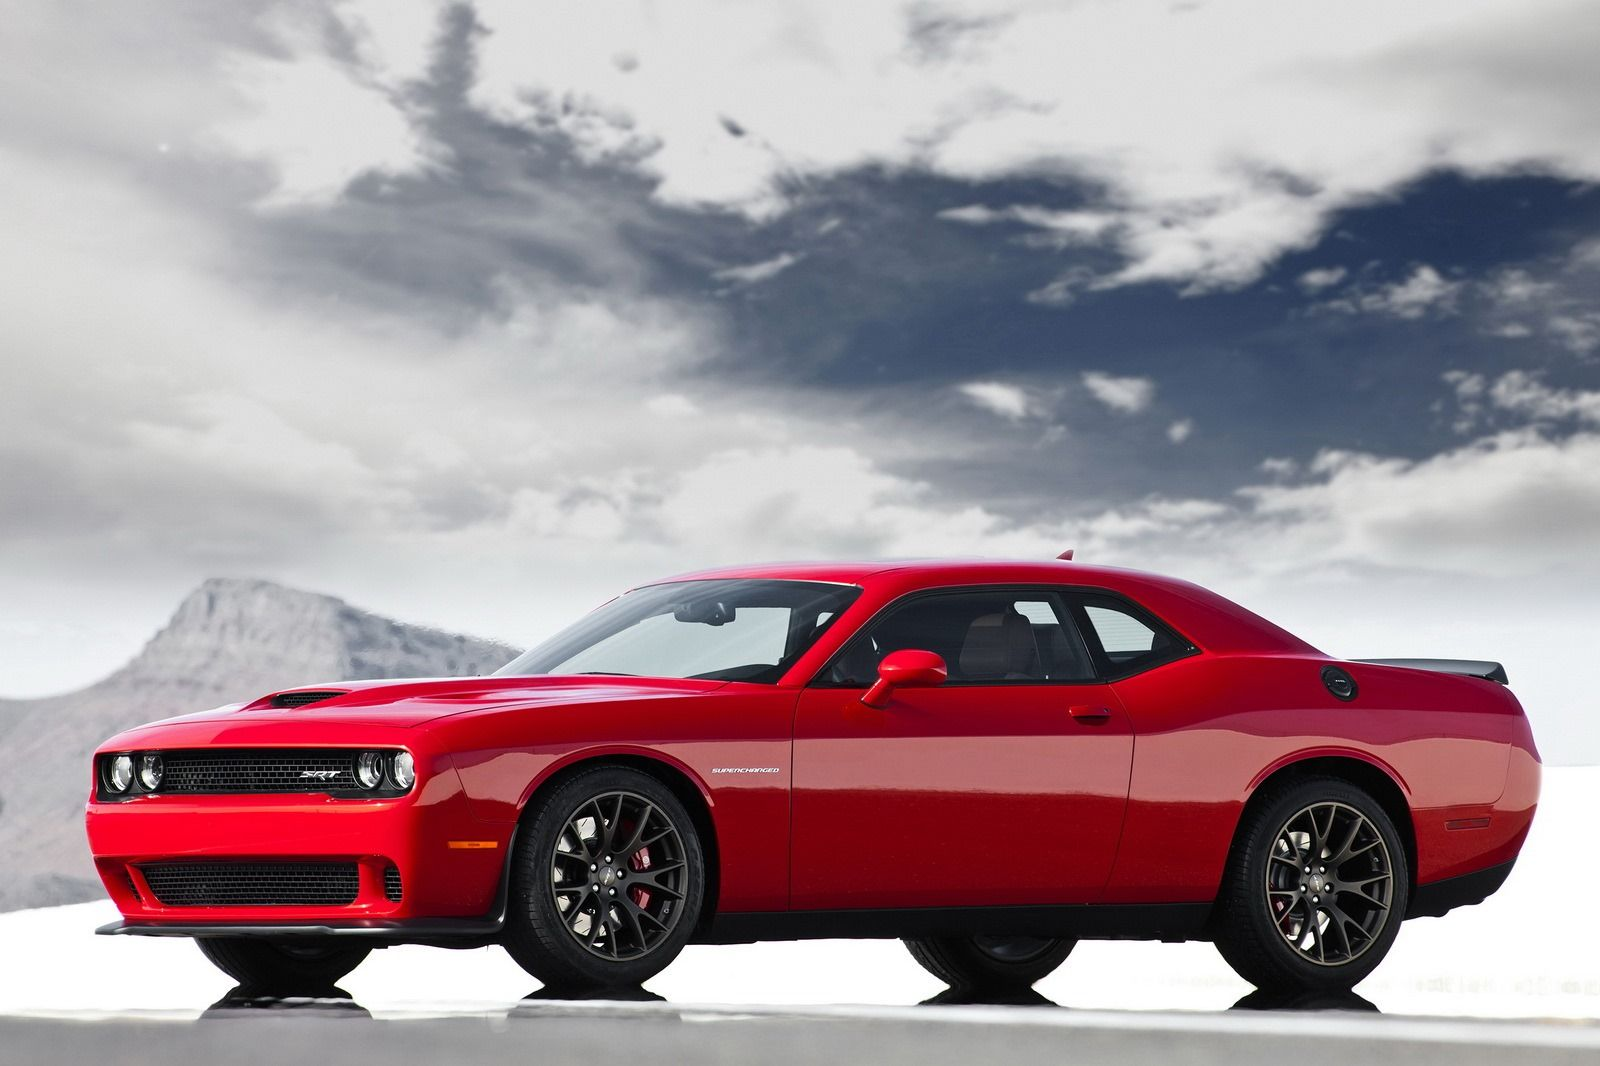 Dodge Challenger Srt Hellcat Officially Rated At 707hp W Video Carscoops Dodge Challenger Hellcat 2015 Dodge Challenger Dodge Challenger